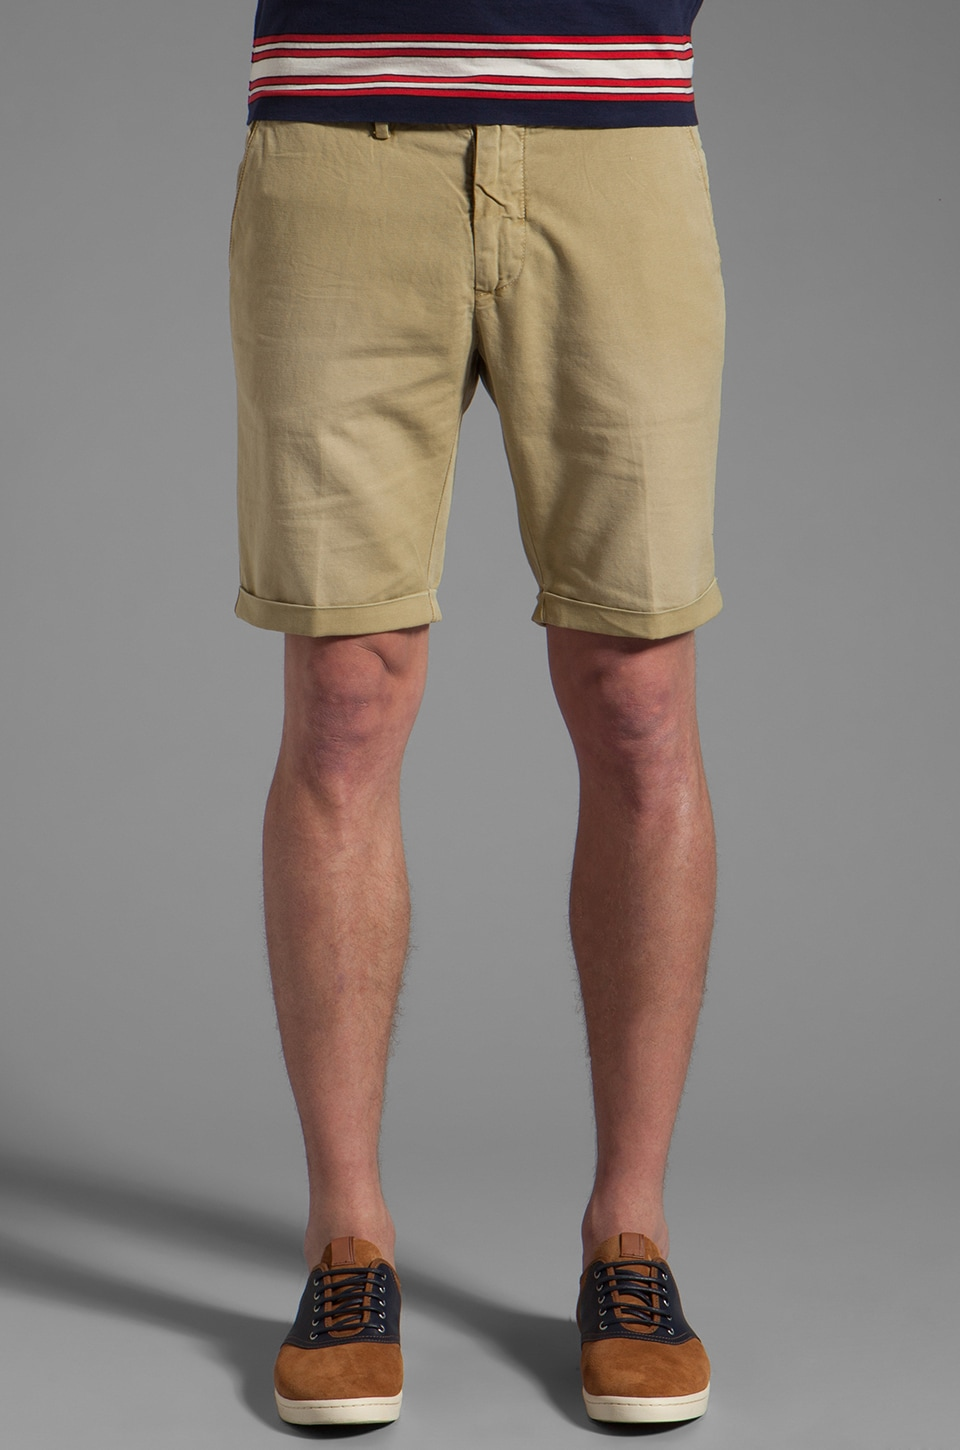 GANT Rugger Canvas Short in Fudge